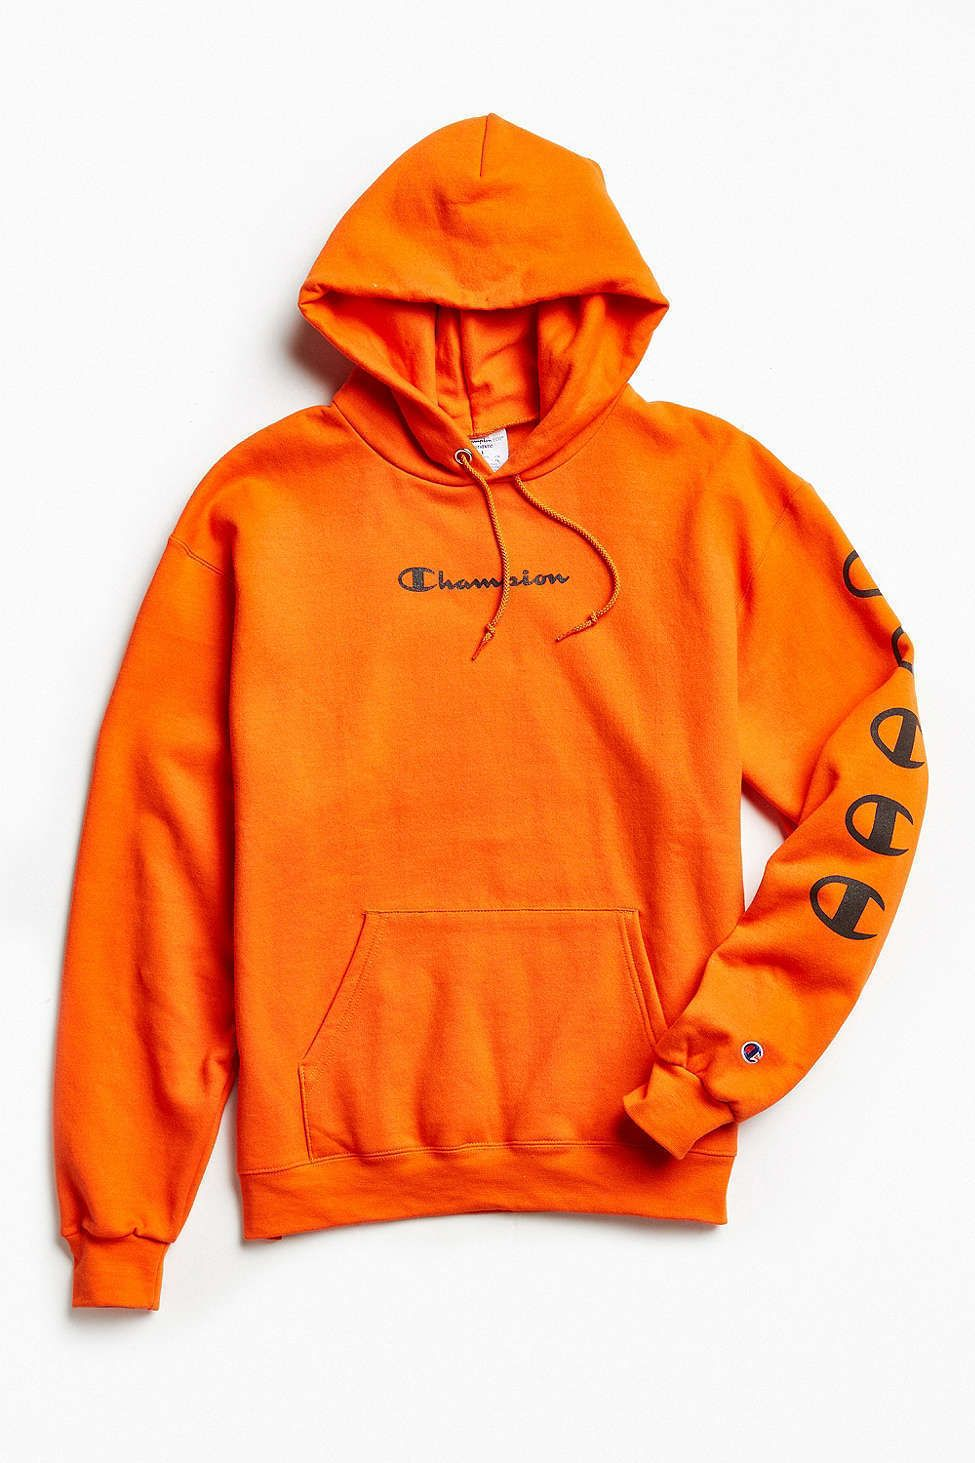 d53834f9a28 NWT Champion Repeat C Logo Hoodie Sweatshirt Supreme Orange Size ...